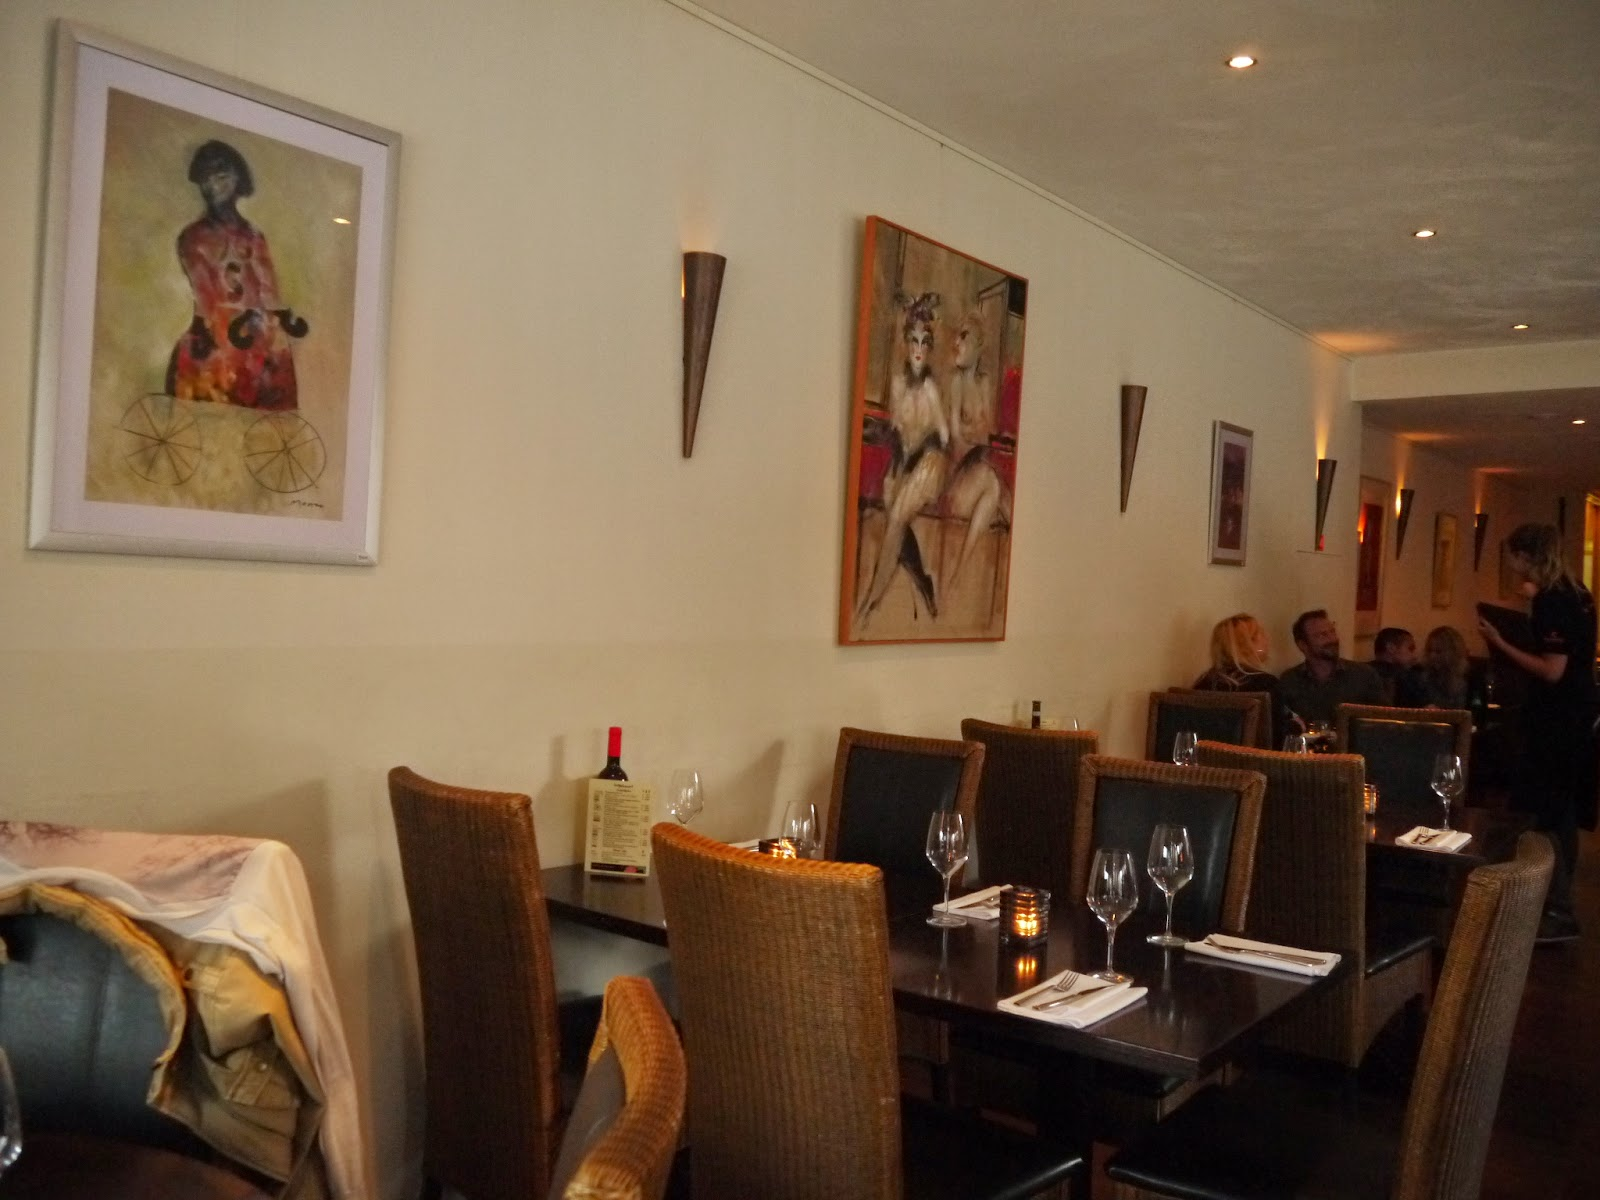 India Corner in Haarlem review by Appetit Voyage